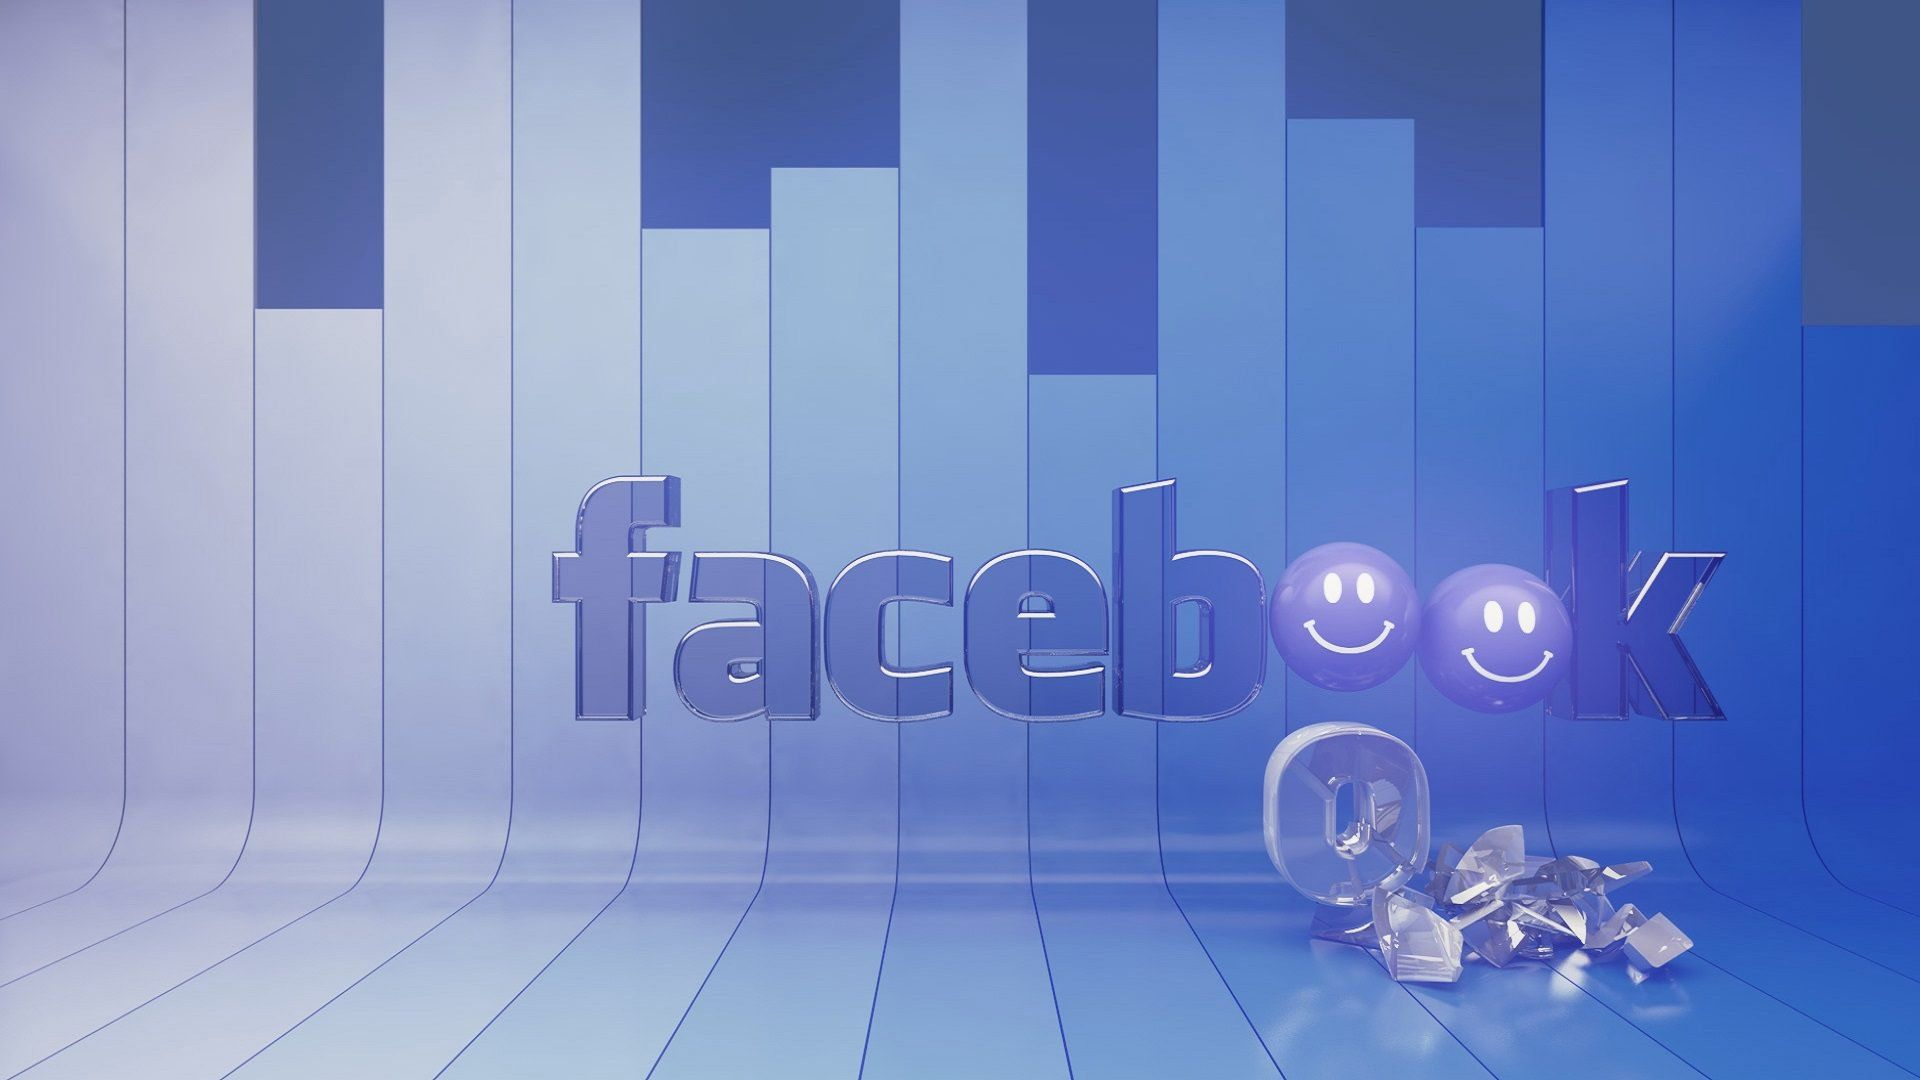 21 Facebook Backgrounds Social Networking Pictures Images